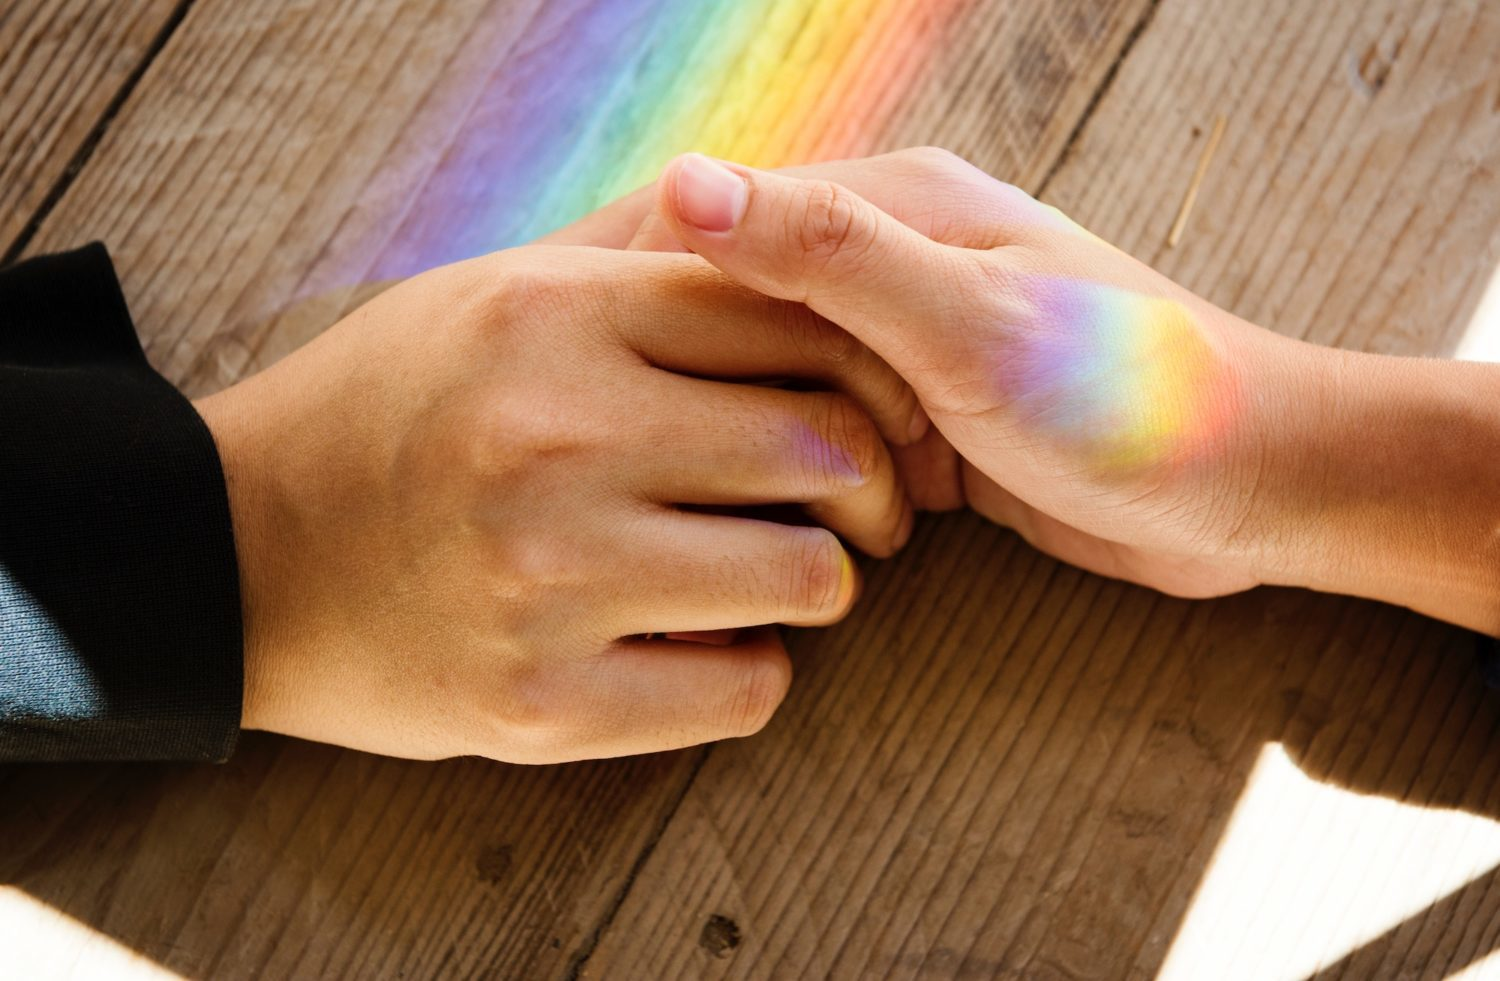 Thumb image for the post on Substance Abuse Within the LGBT Community